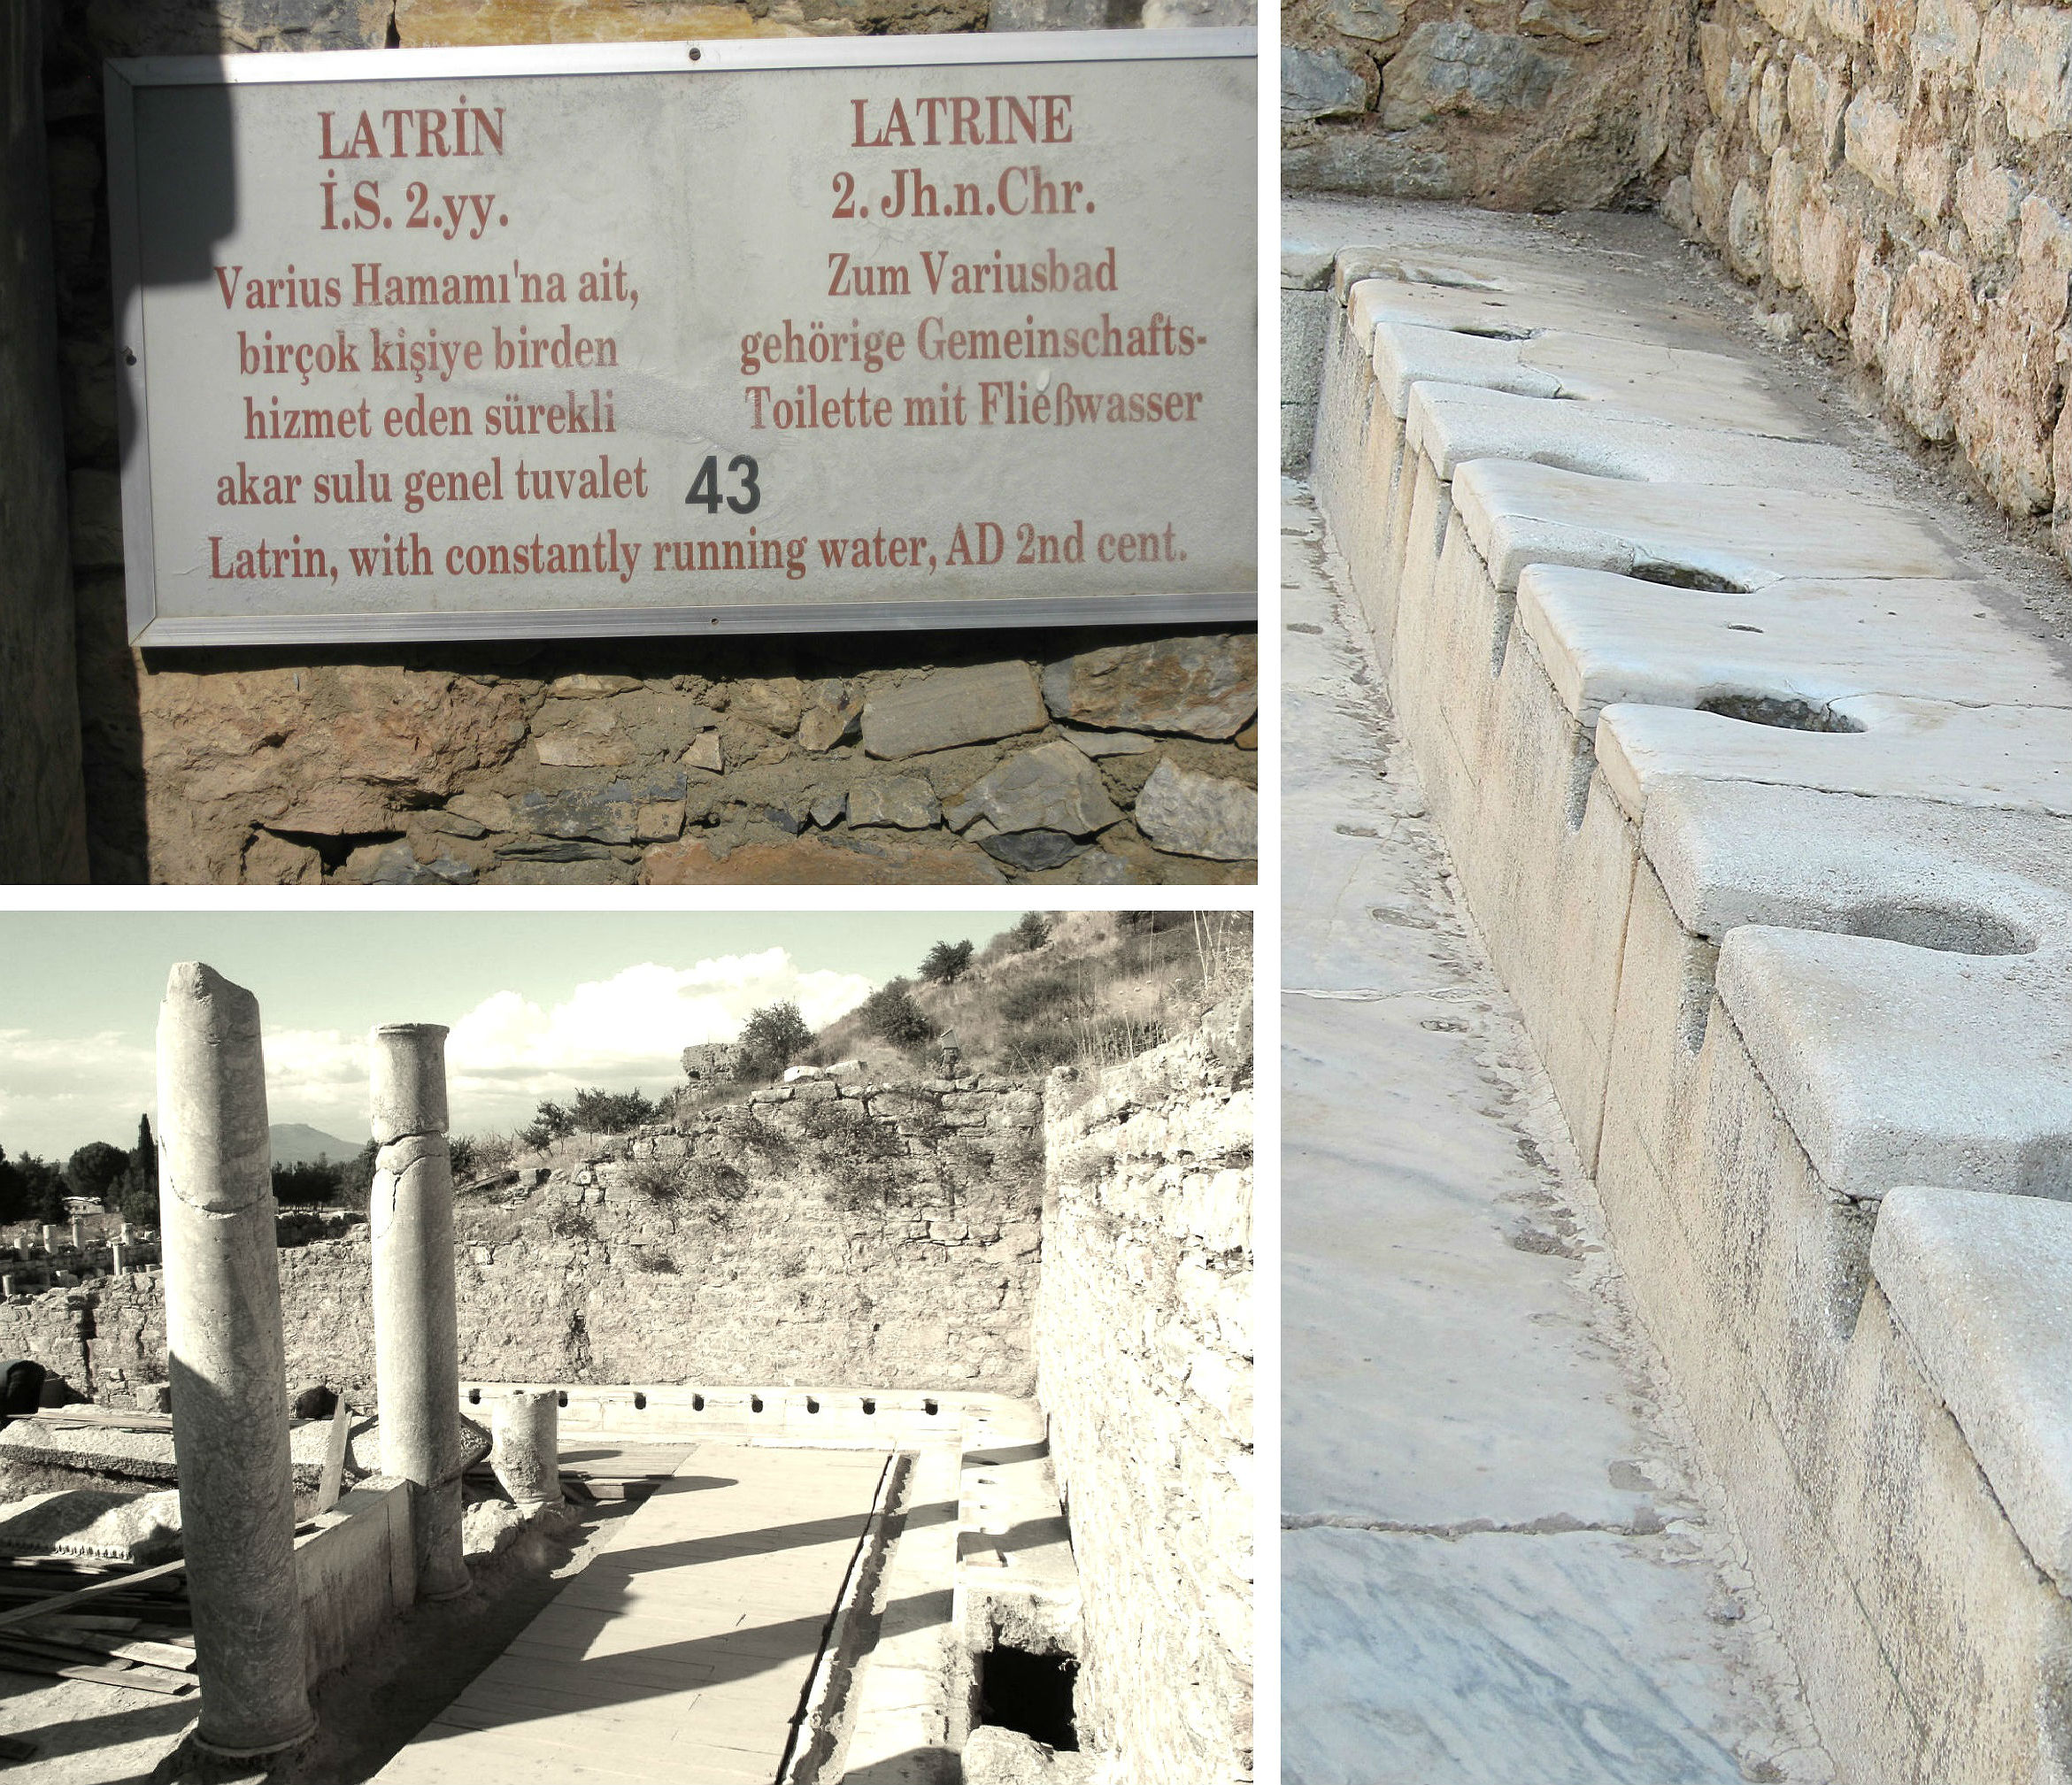 brothel-and-latrine